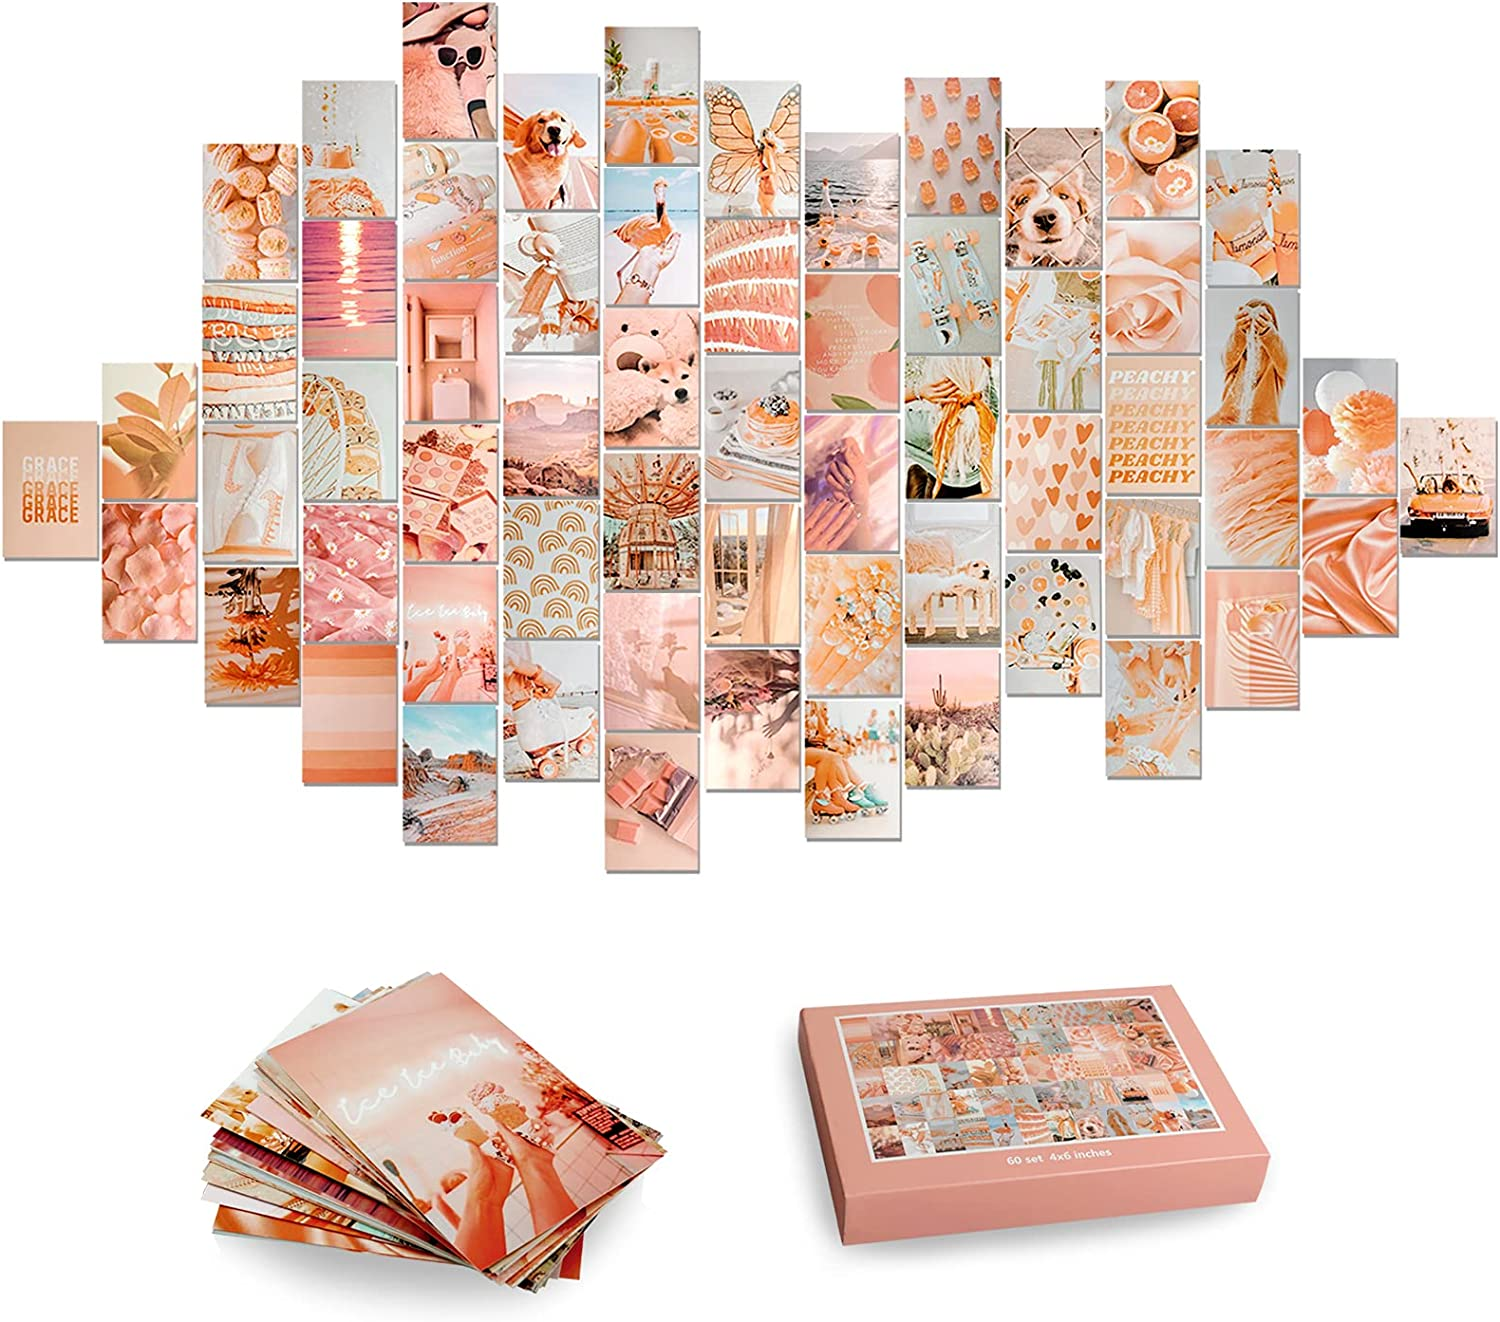 60Pcs Photo Collage kit for Wall Aesthetic Picture 4x6 Inch | Boho Peach Aesthetic Room Decor for Bedroom Aesthetic | Photo Collection Collage Dorm Decor for Teen Girls | Wall Art Beach Collage